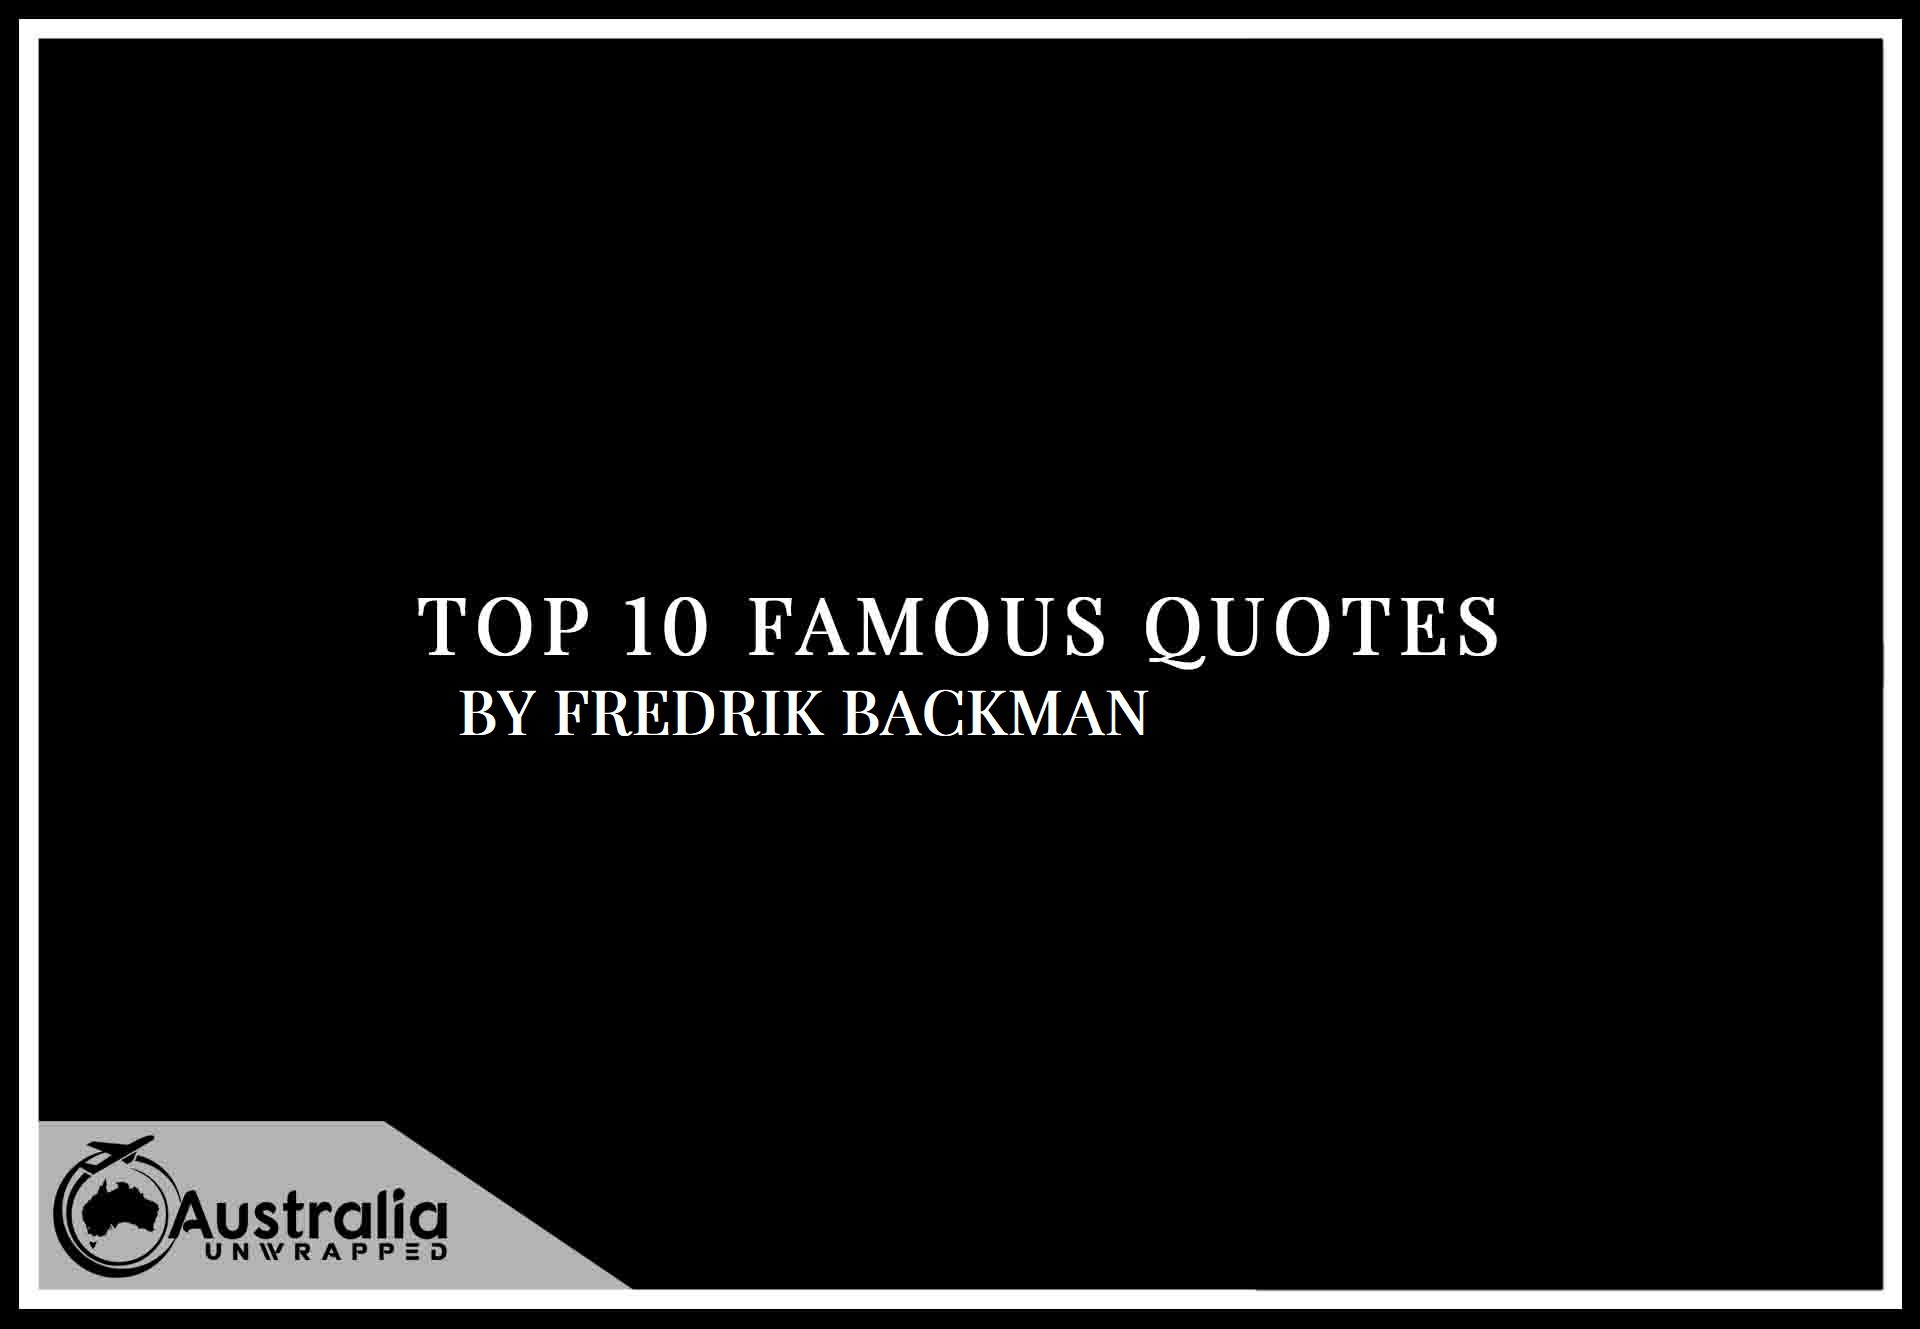 Top 10 Famous Quotes by Author Fredrik Backman